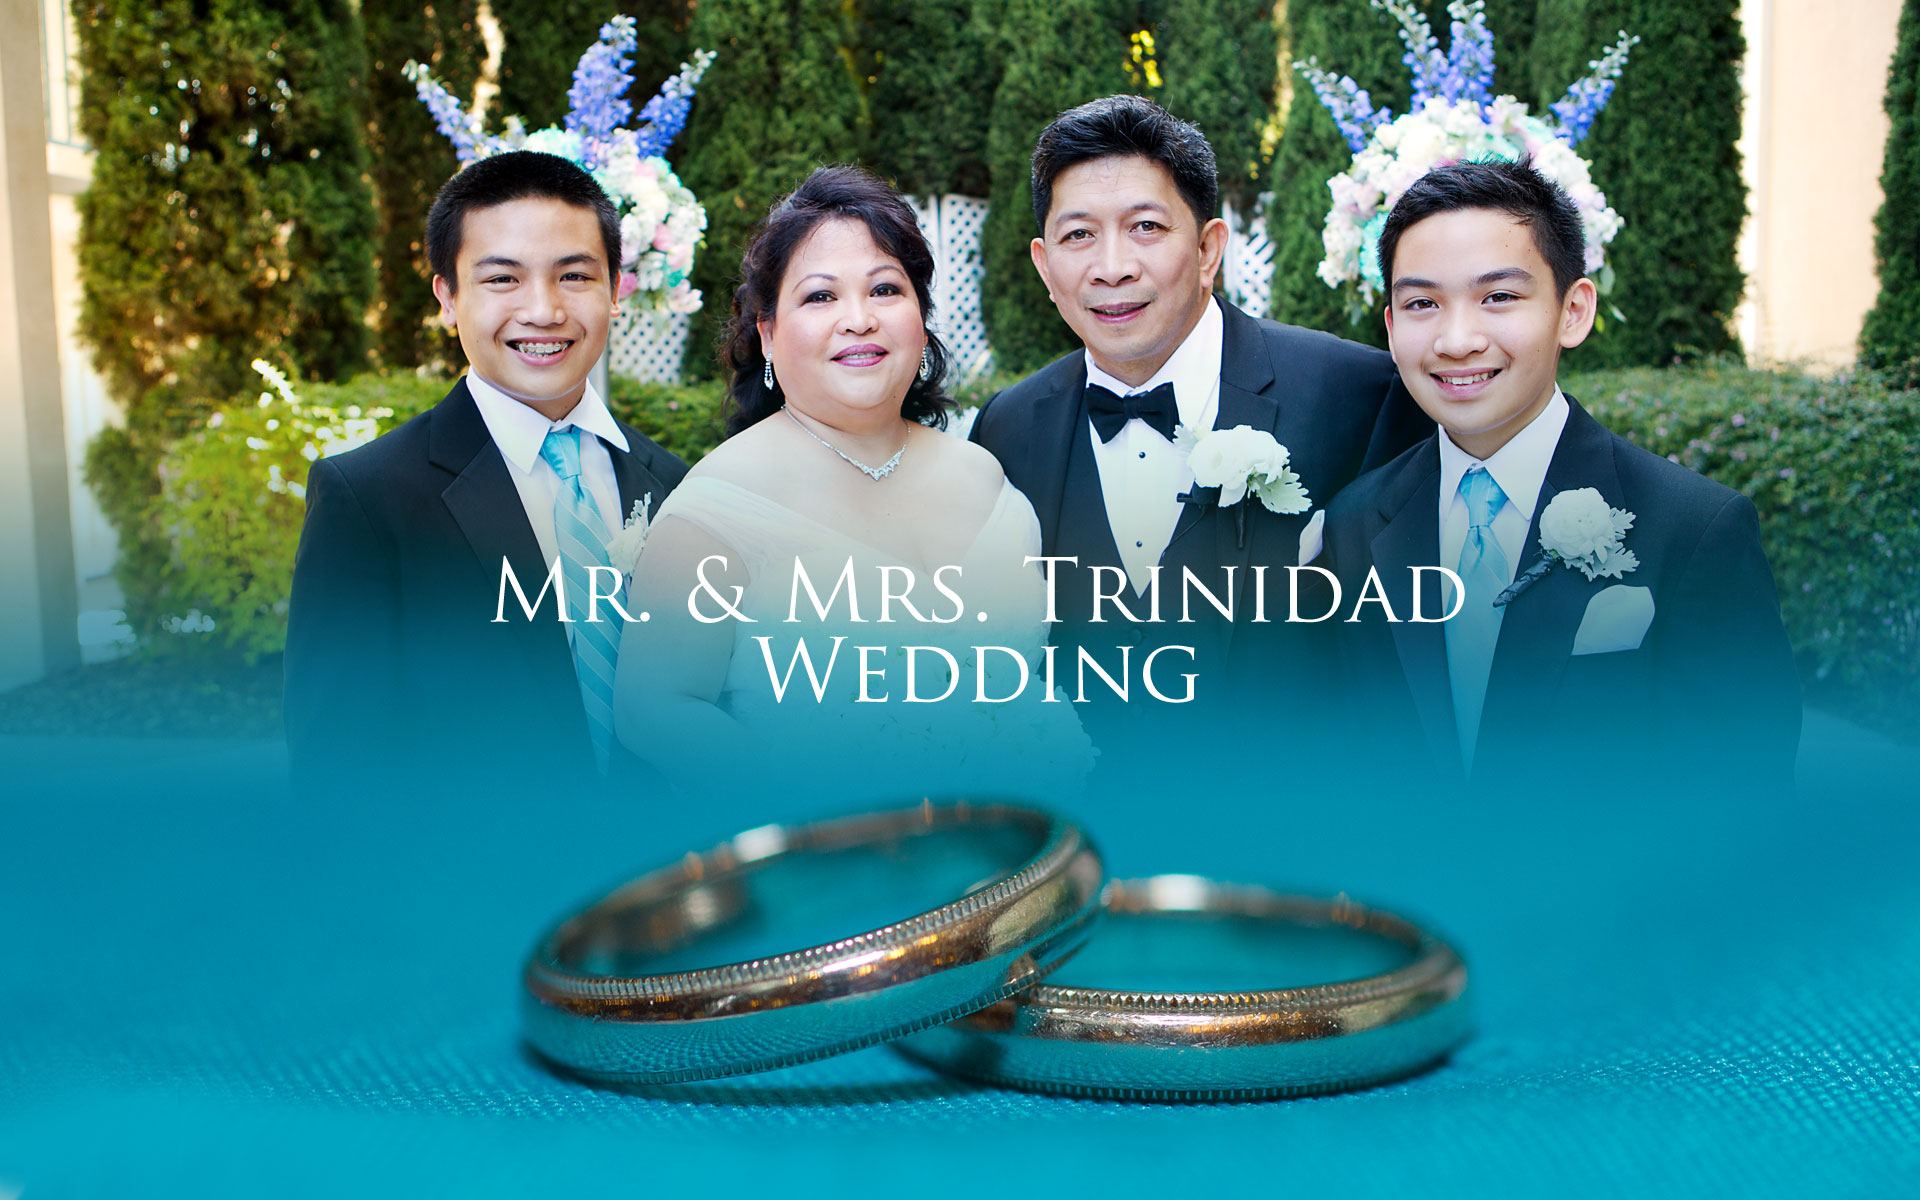 Mr. & Mrs Trinidad Wedding